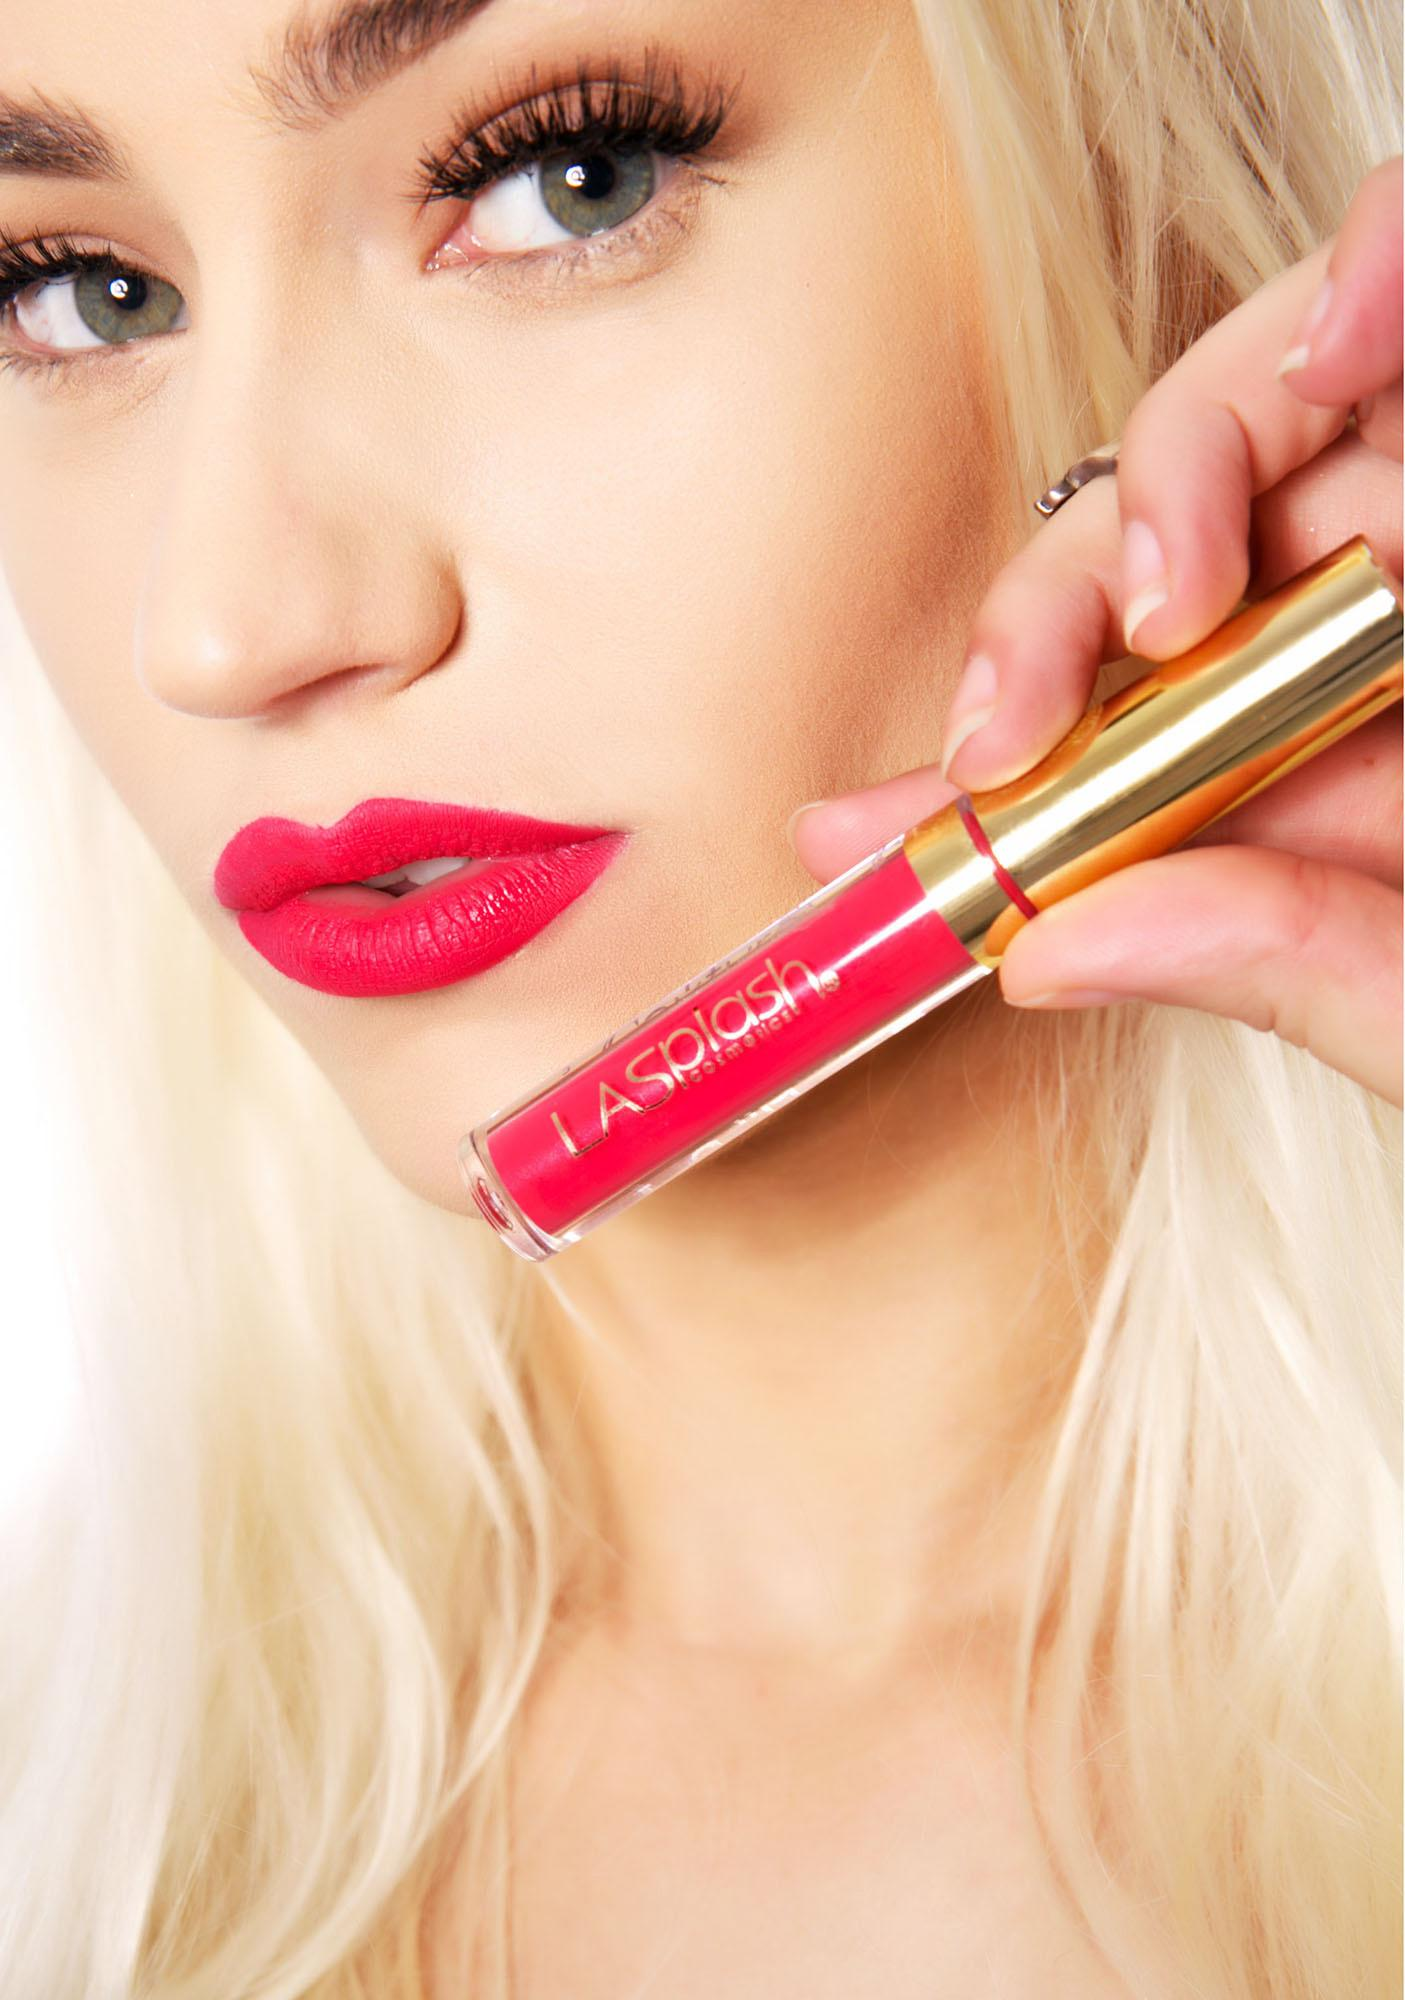 LA Splash Lollipop Liquid Lipstick